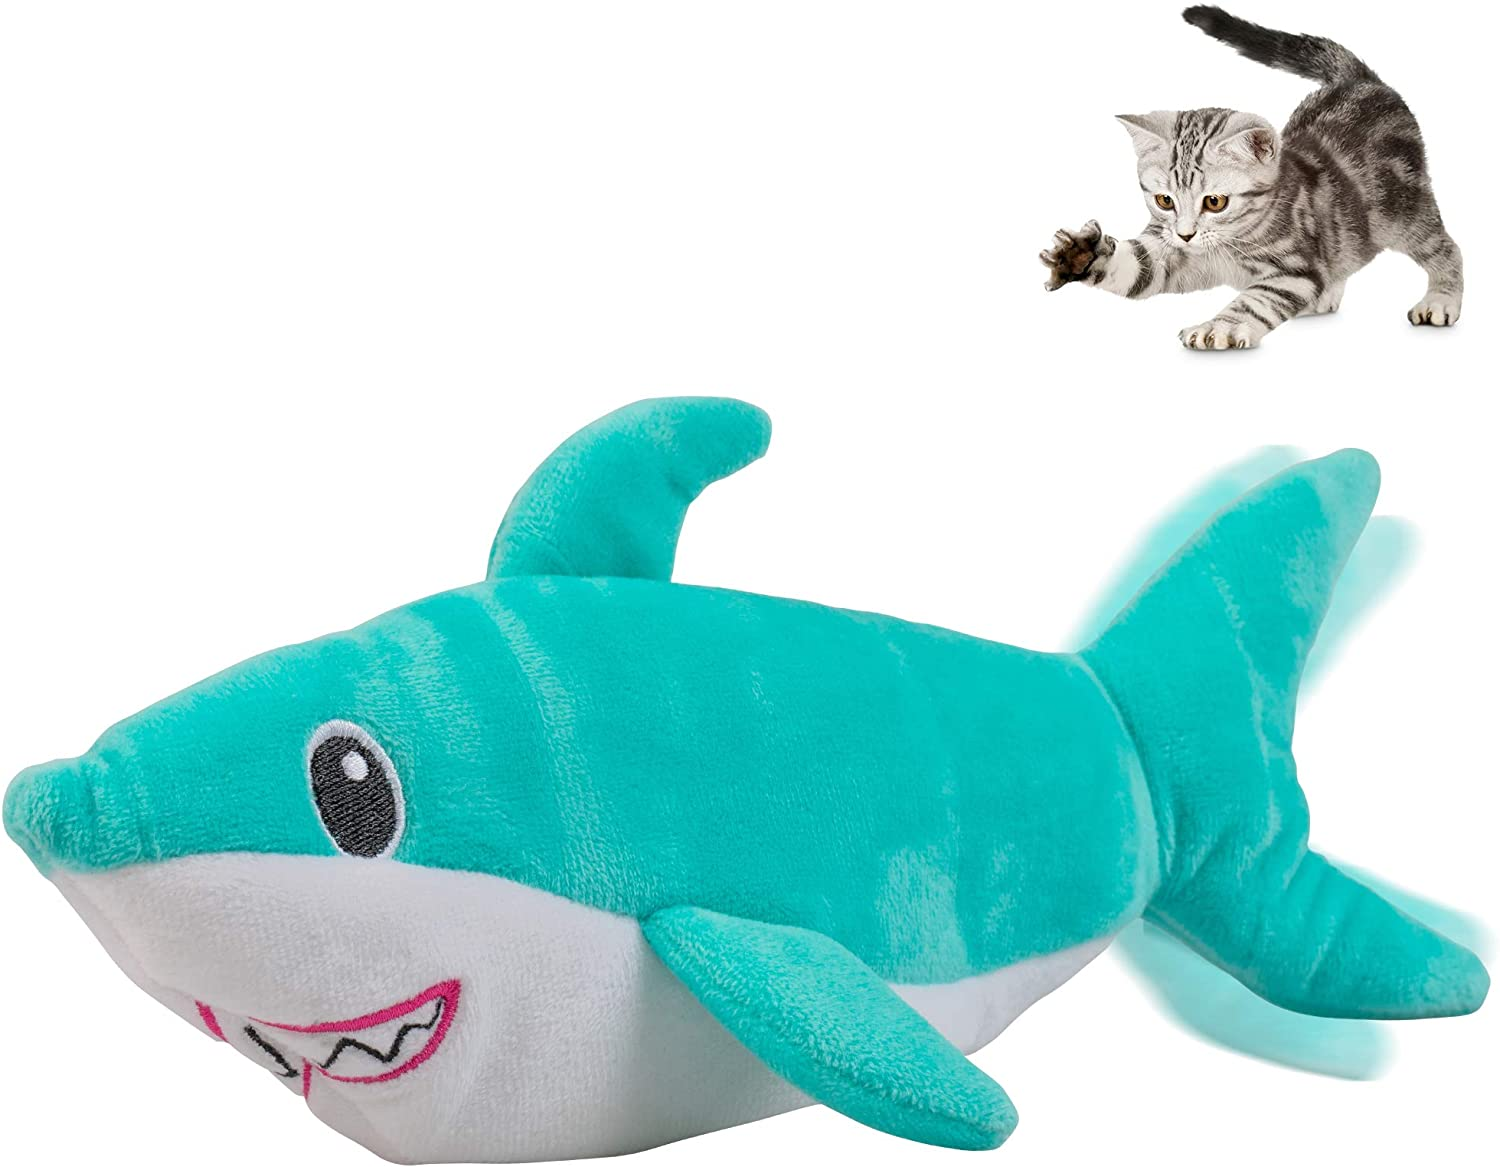 Pet Craft Supply Wiggle Pickle and Shimmy Shark Flipper Flopper Interactive Electric Realistic Flopping Wiggling Moving Fish Potent Catnip and Silvervine Cat Toy